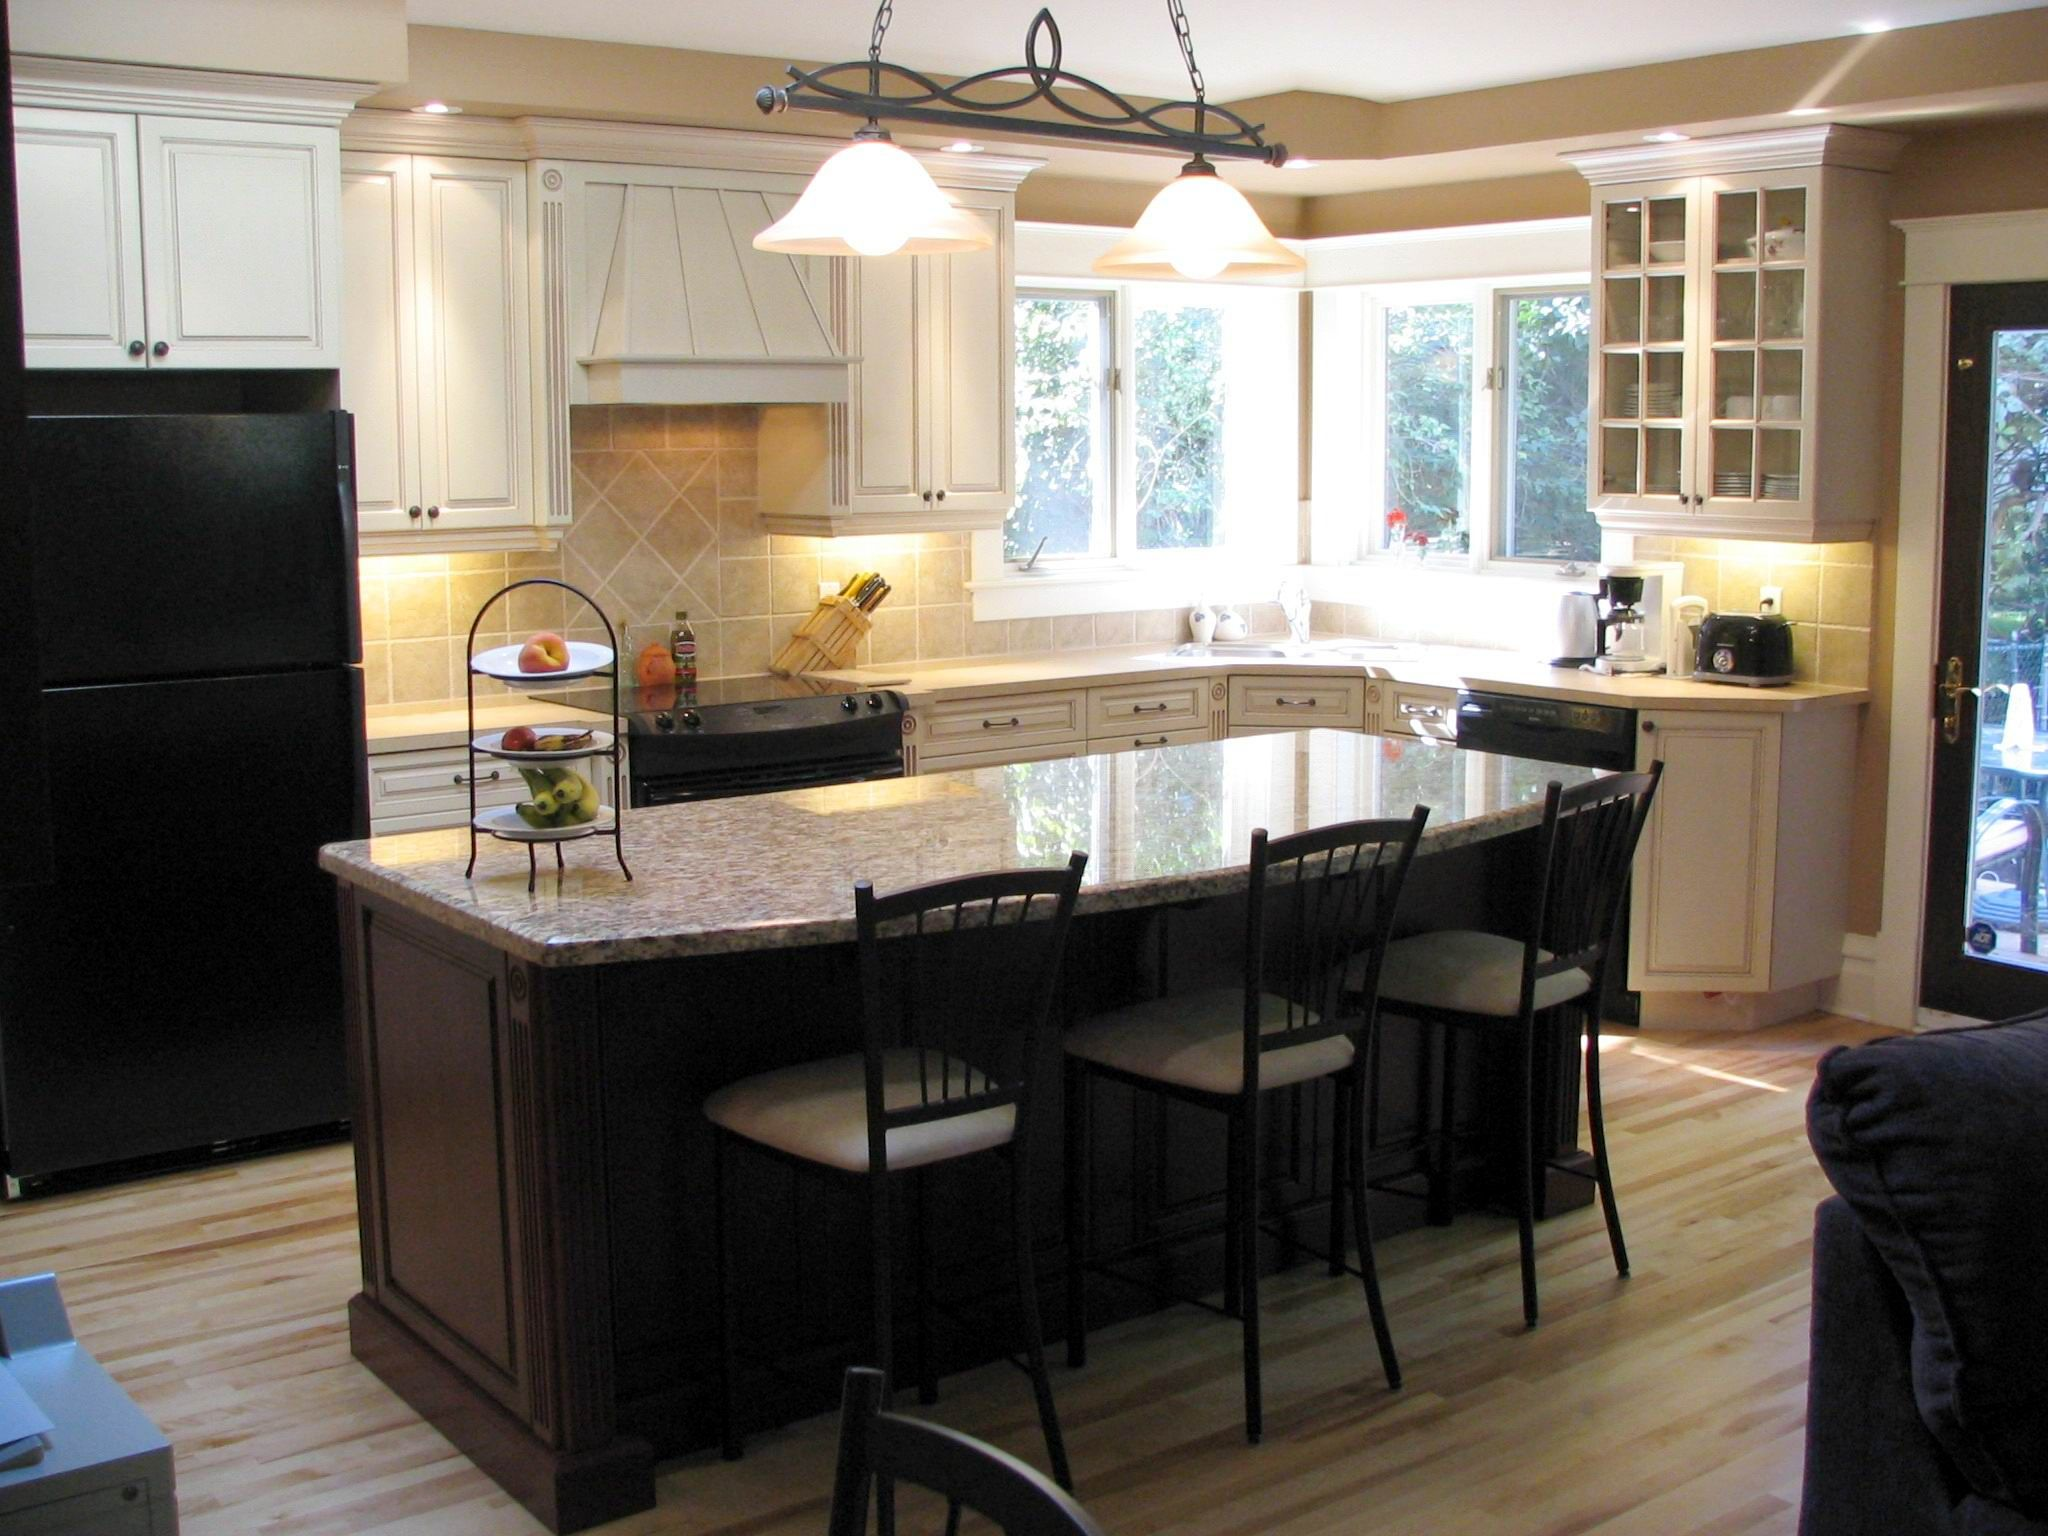 Kitchen Craft Cabinetry Lexington Door Maple Wood Alabaster Finish Farmhouse Sink Gas Range Kitchen Remodel Farmhouse Sink Kitchen Crafts